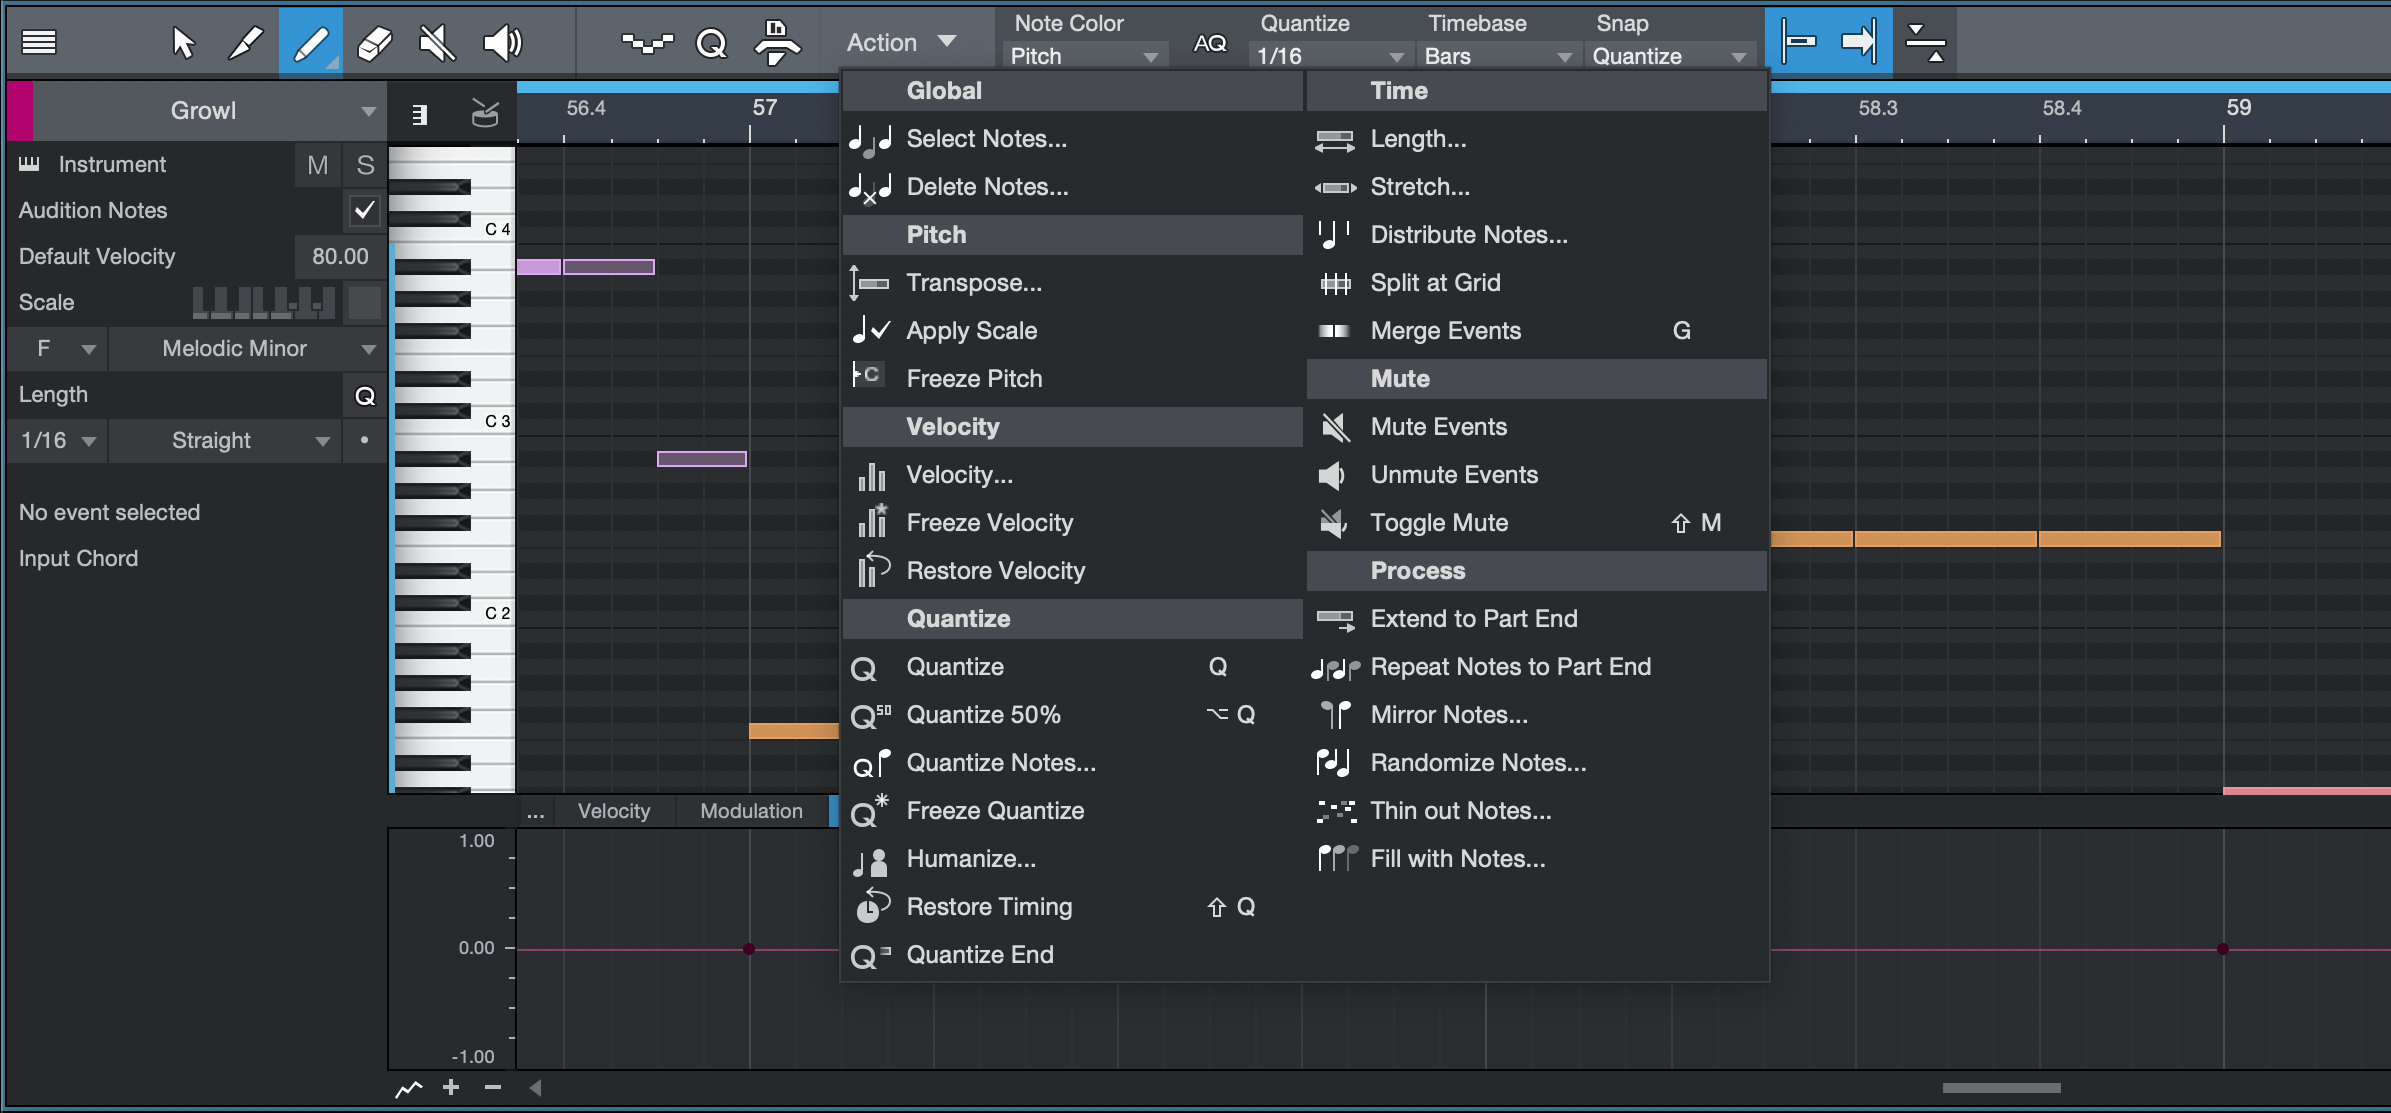 Studio One 4.5 Music Editor with Note Actions. Click for larger image.